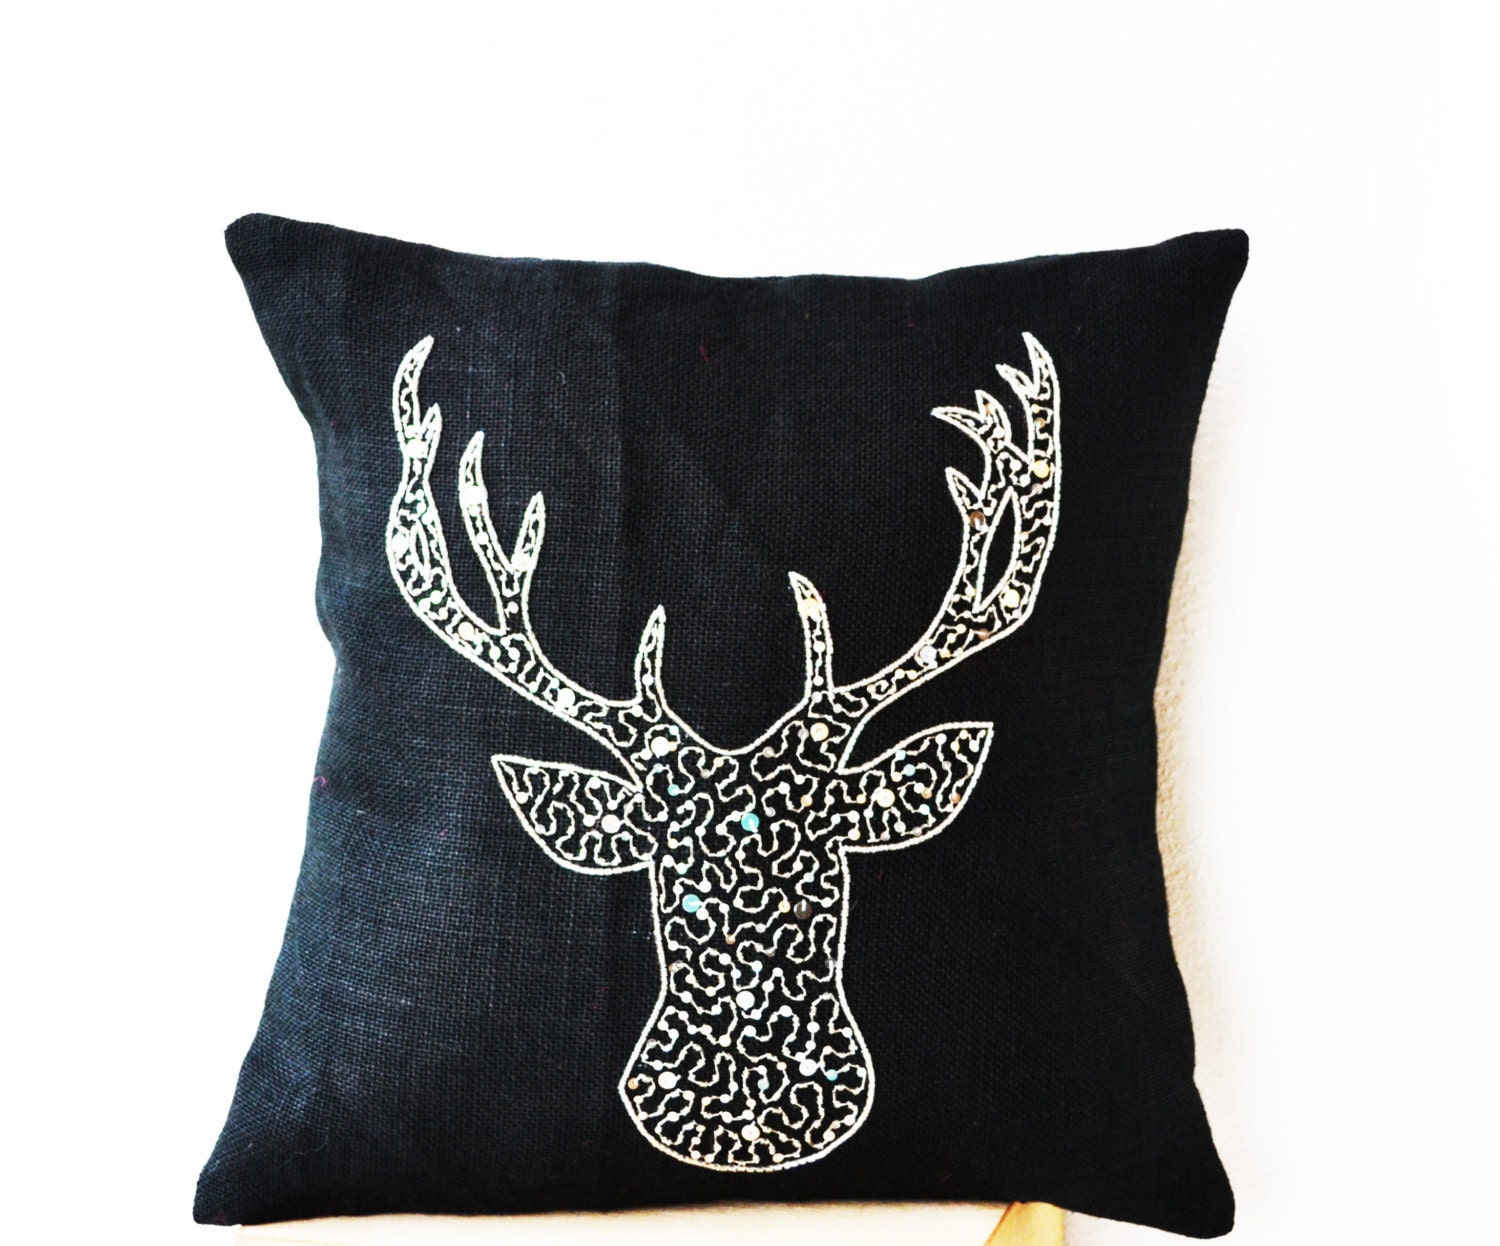 Deer pillow cover animal stag embroidered in silver